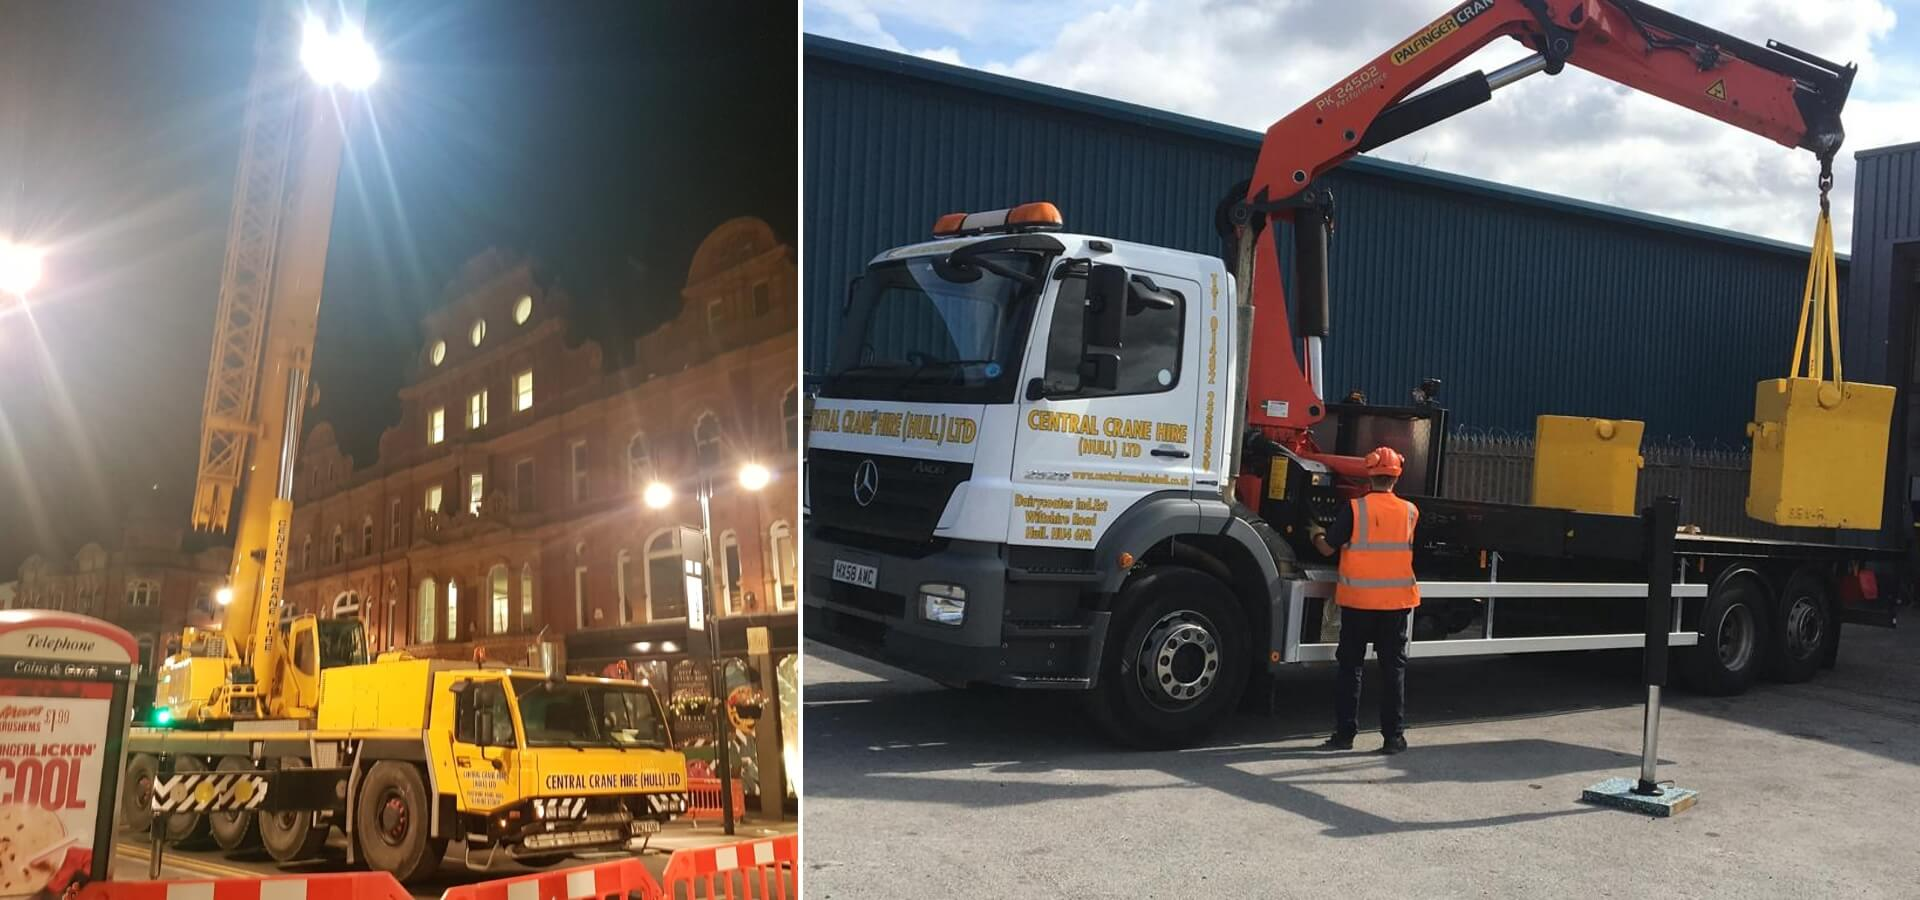 Central Crane Hire (Hull) Ltd | Crane & Forklift Hire - Central